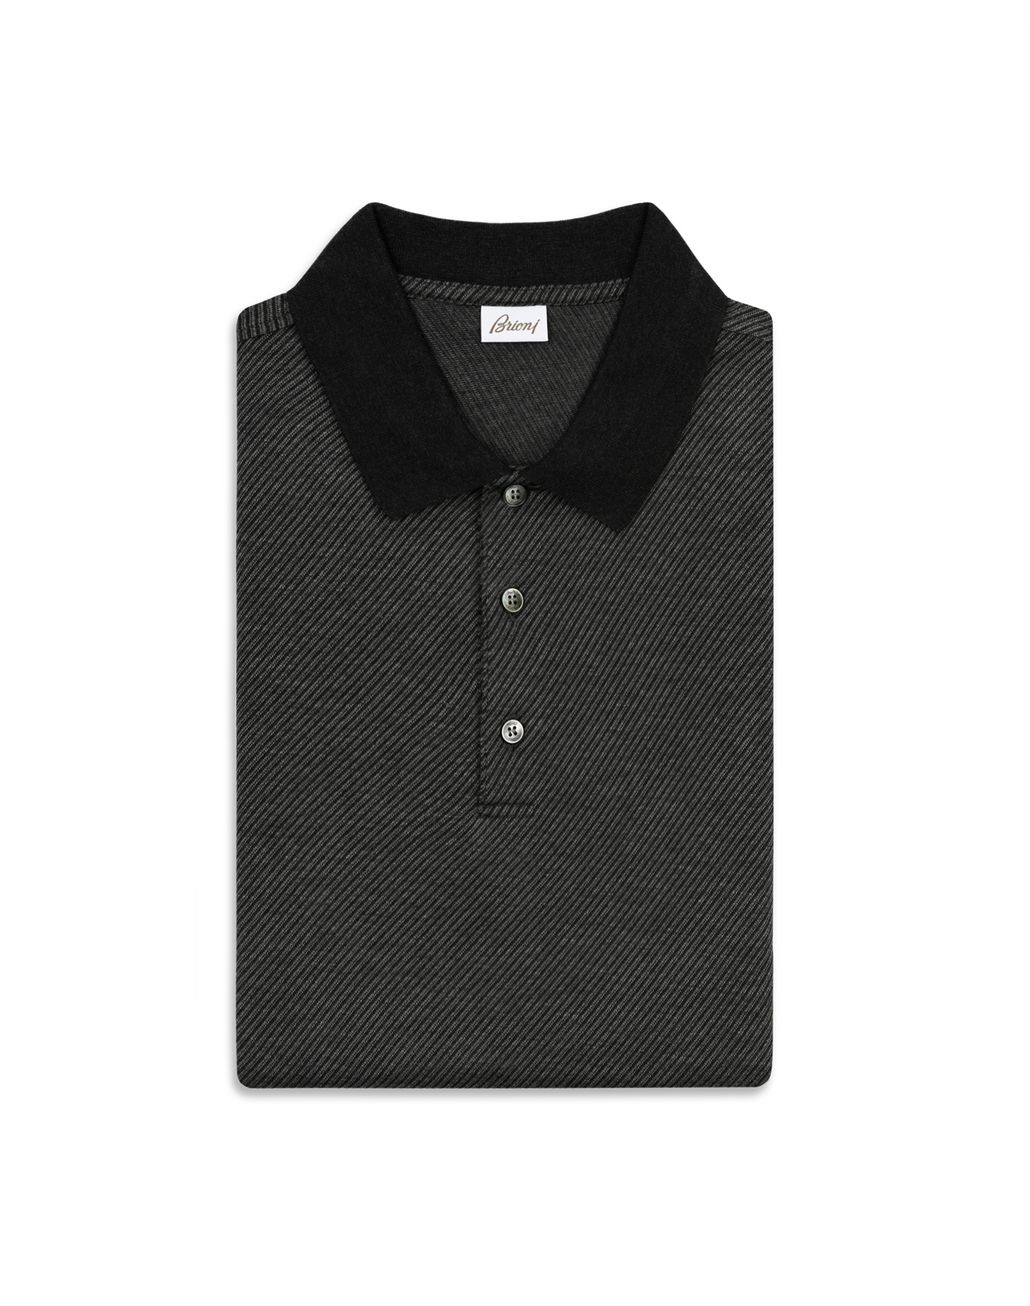 BRIONI Antrachite Jacquard Polo Shirt T-Shirts & Polos Man e